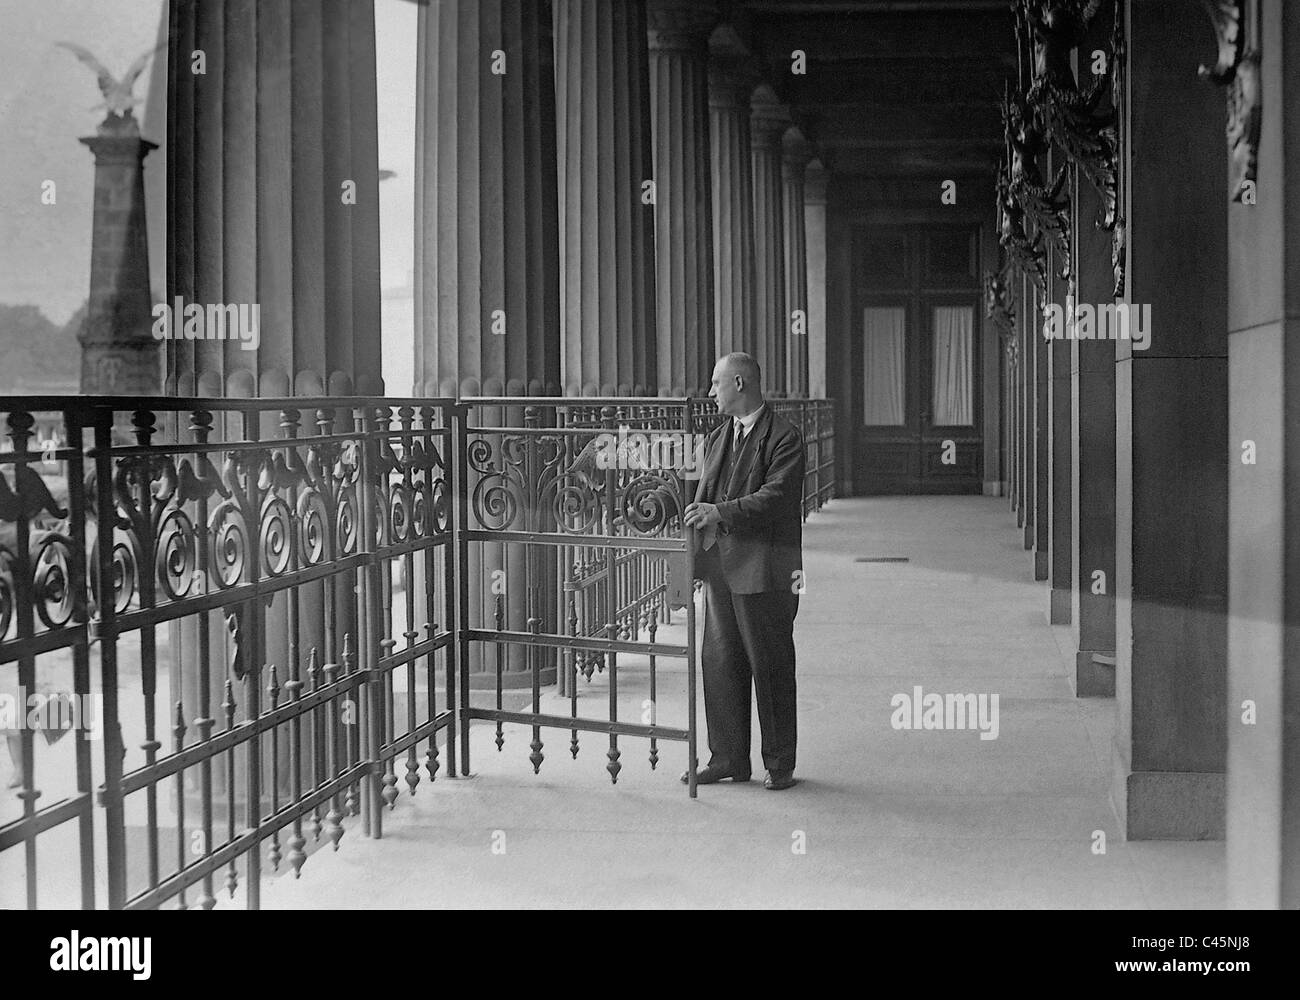 Colonnade of the closed Berlin Stock market during the Great Depression, 1931 - Stock Image